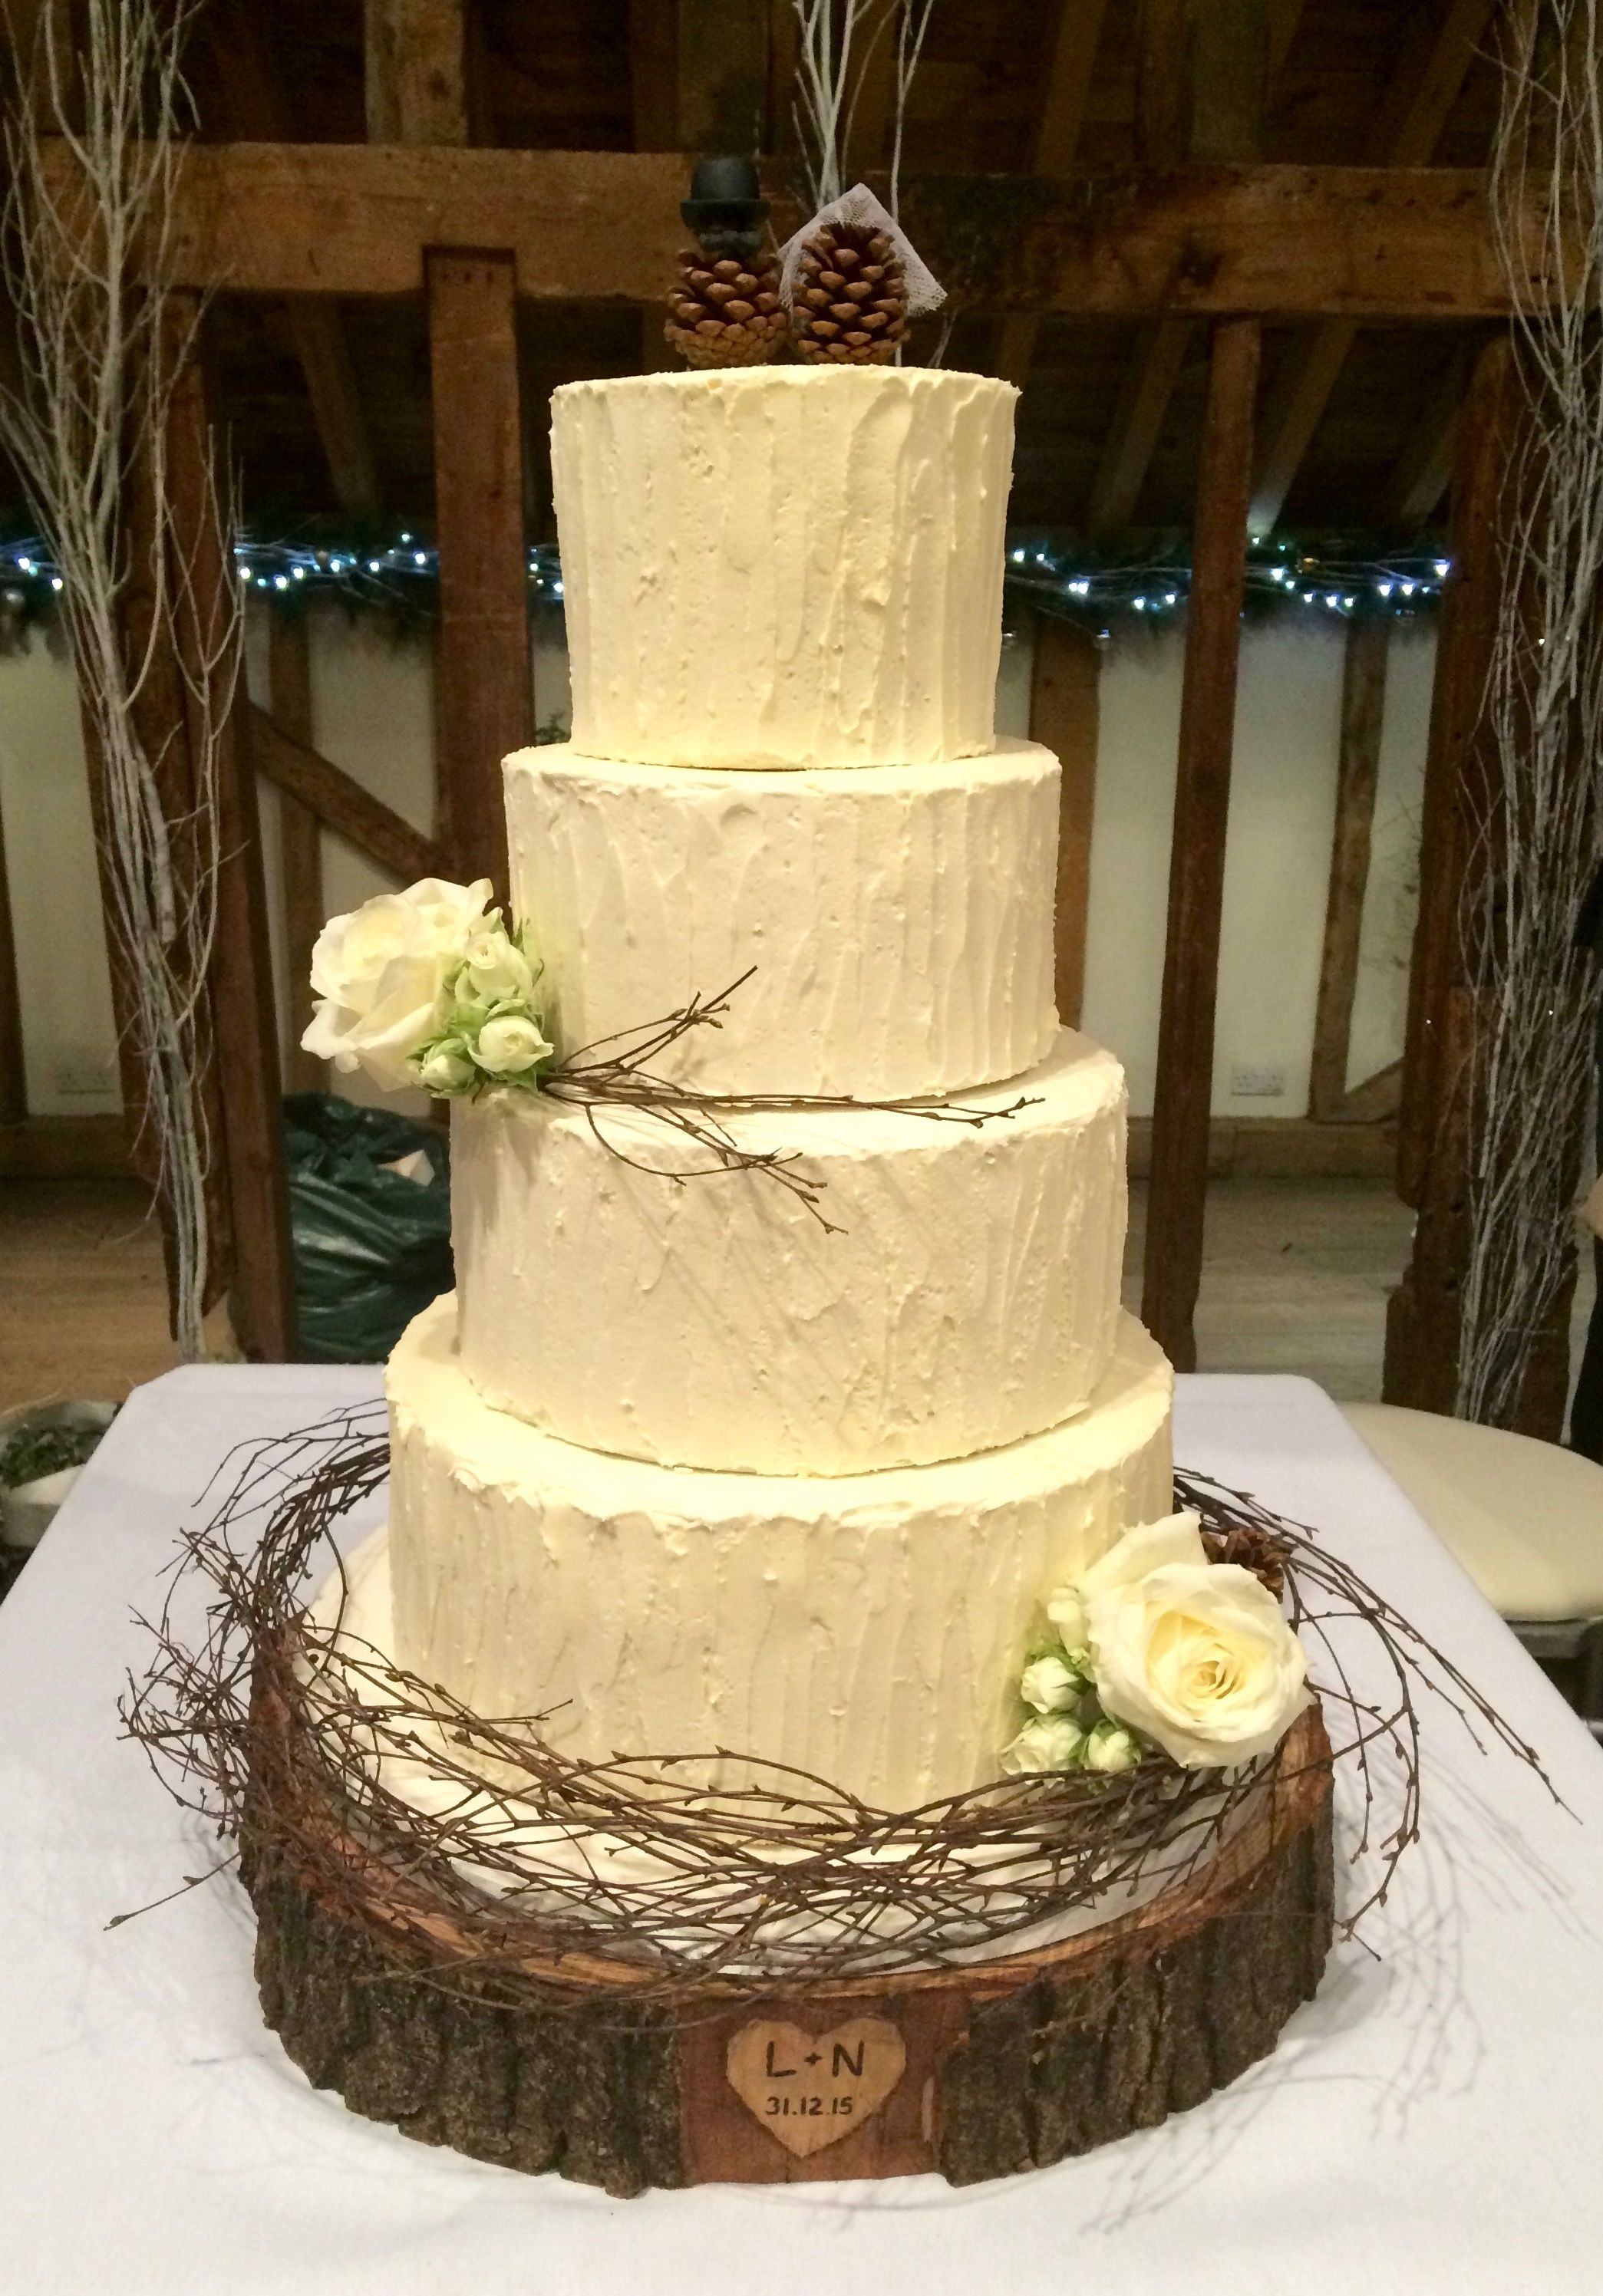 Rustic Wedding Cake by Katy Made Cakes - Wedding and Birthday Cakes ...